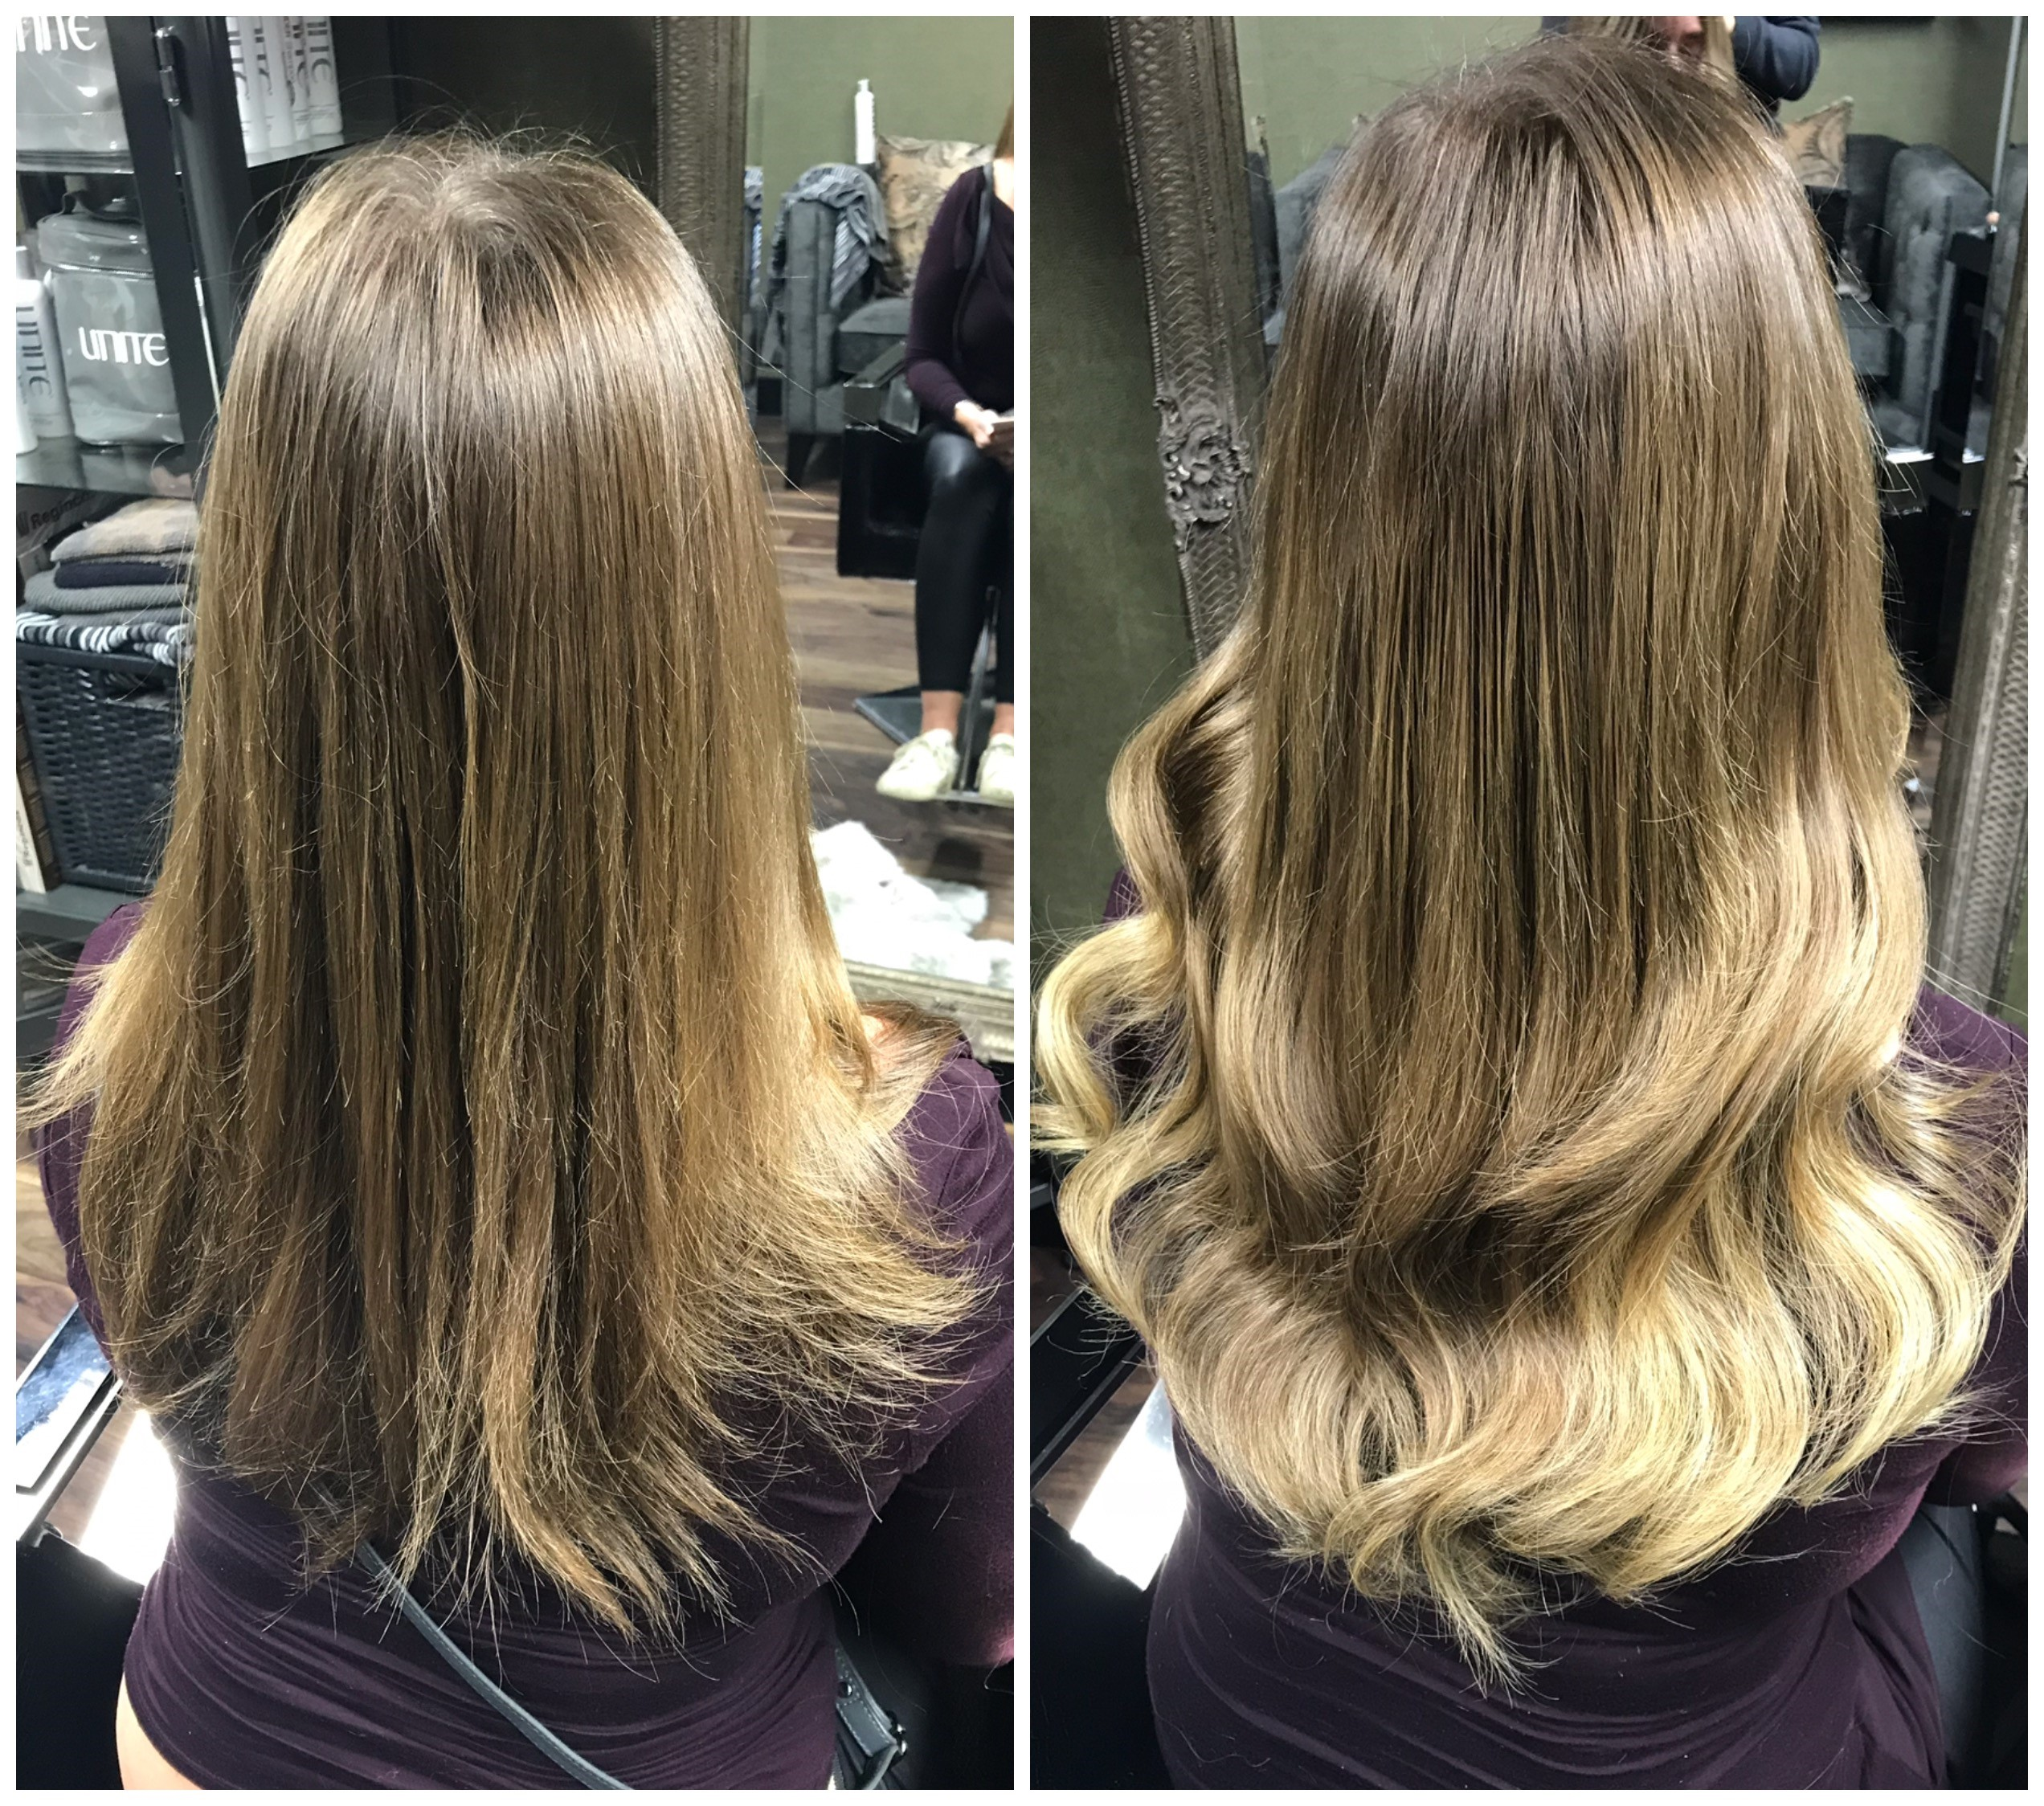 Louise Bailey Tape Hair Extensions3 Hair Extensions London